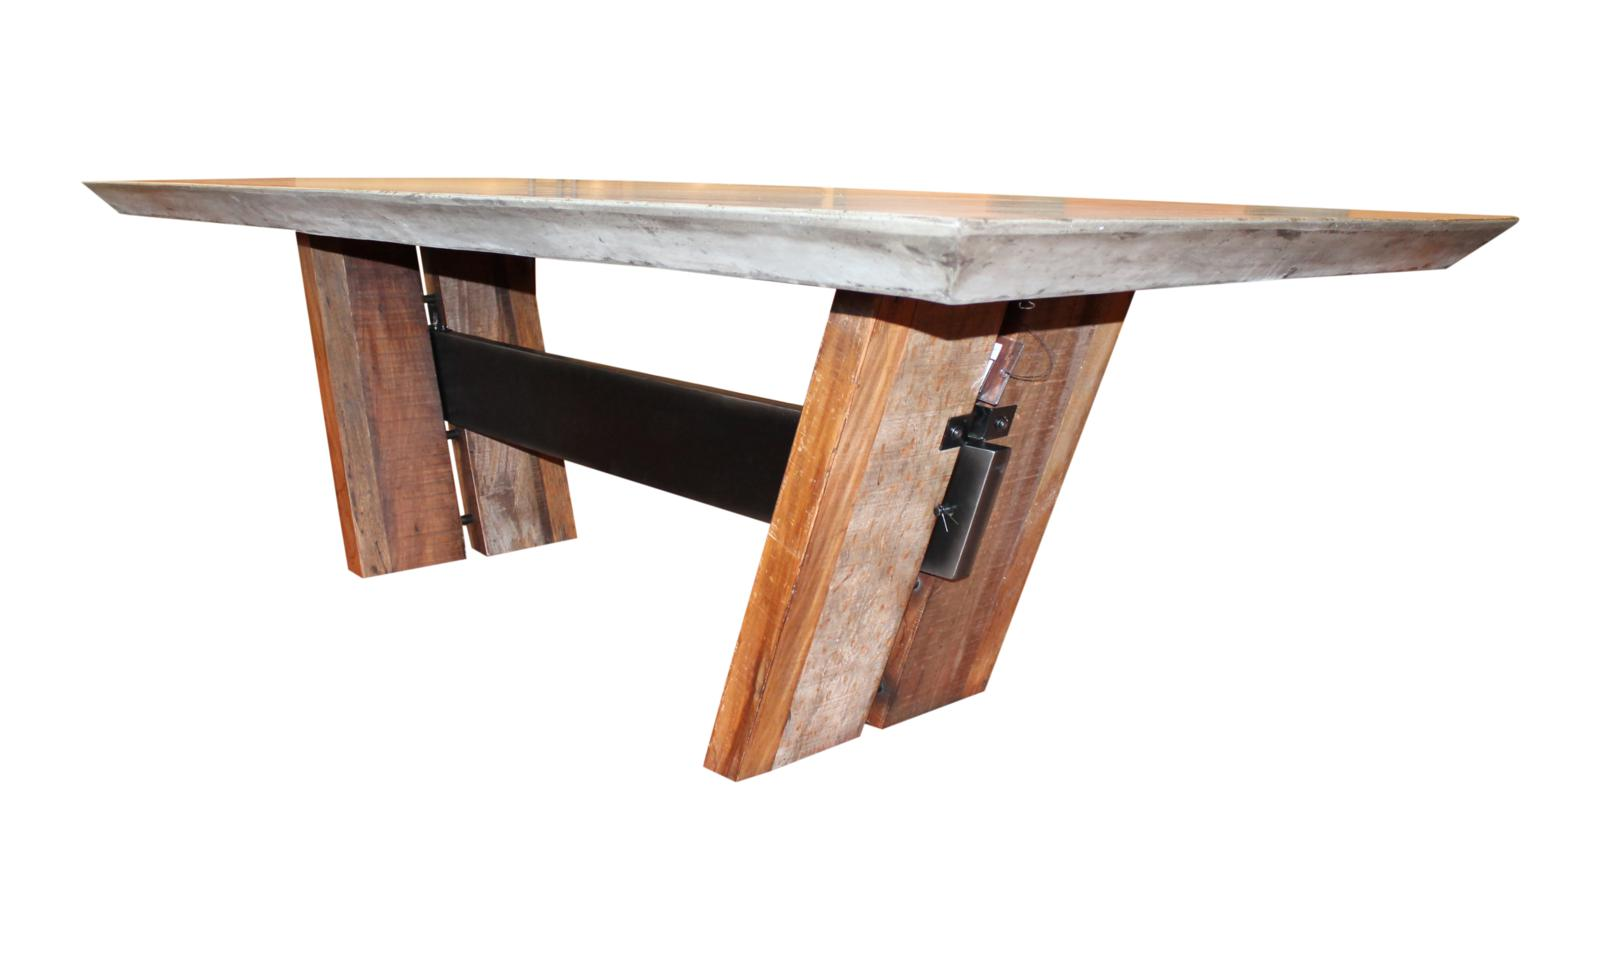 Floor Dining Table : concrete table 1 from hwiki.us size 1600 x 960 jpeg 70kB